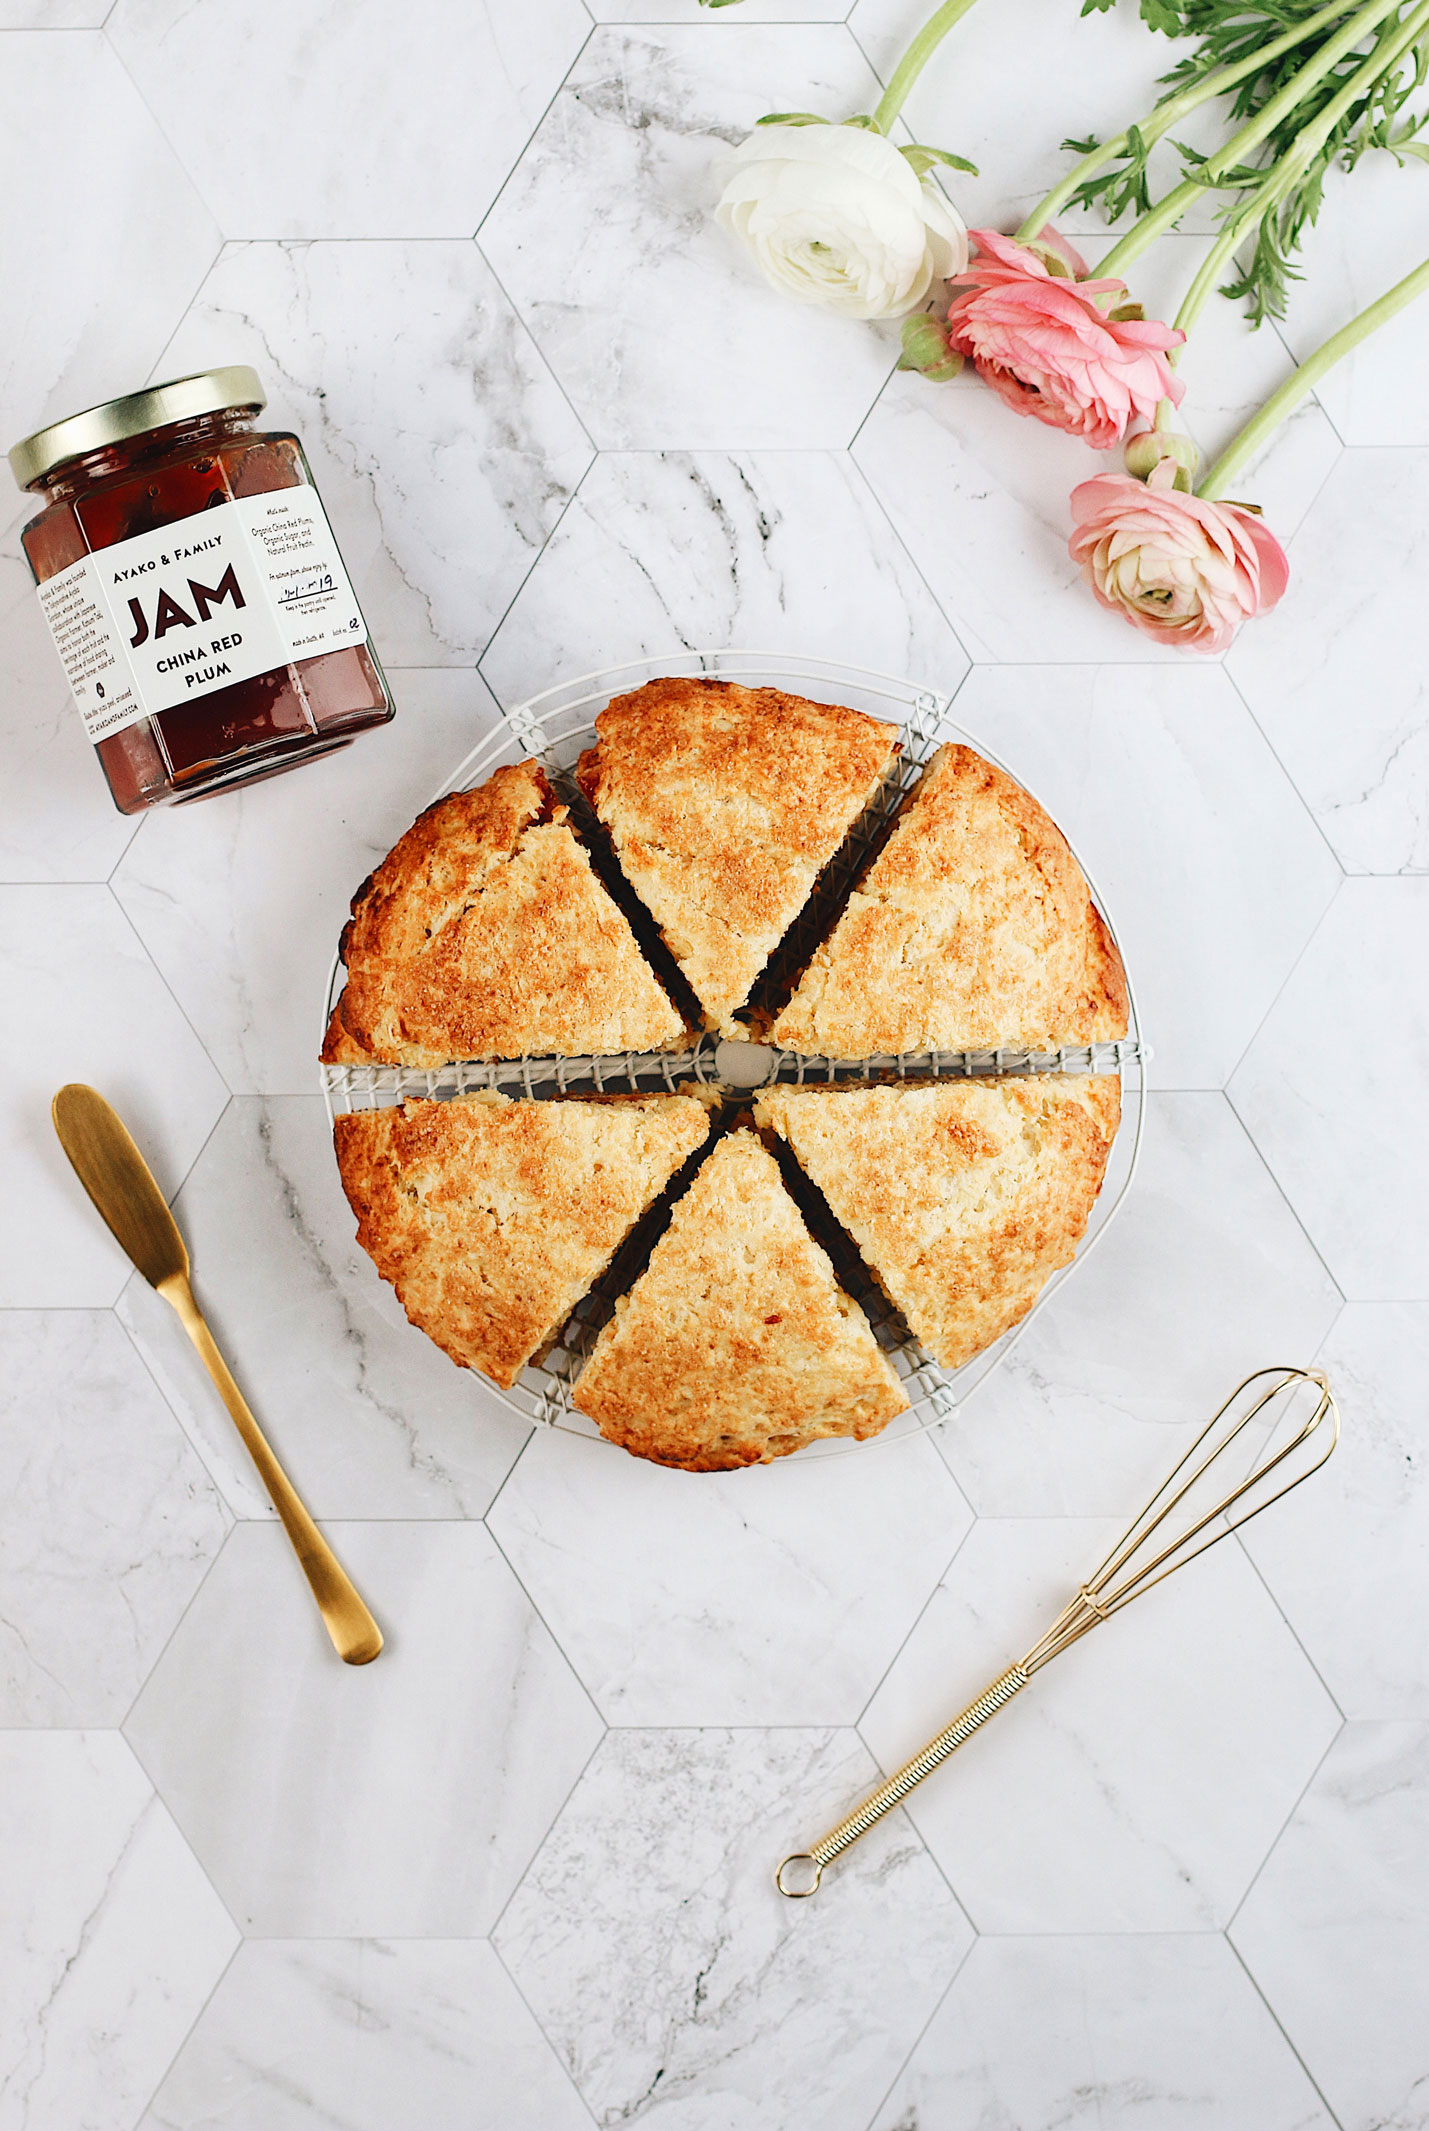 jam-scone-kate-wood-whole